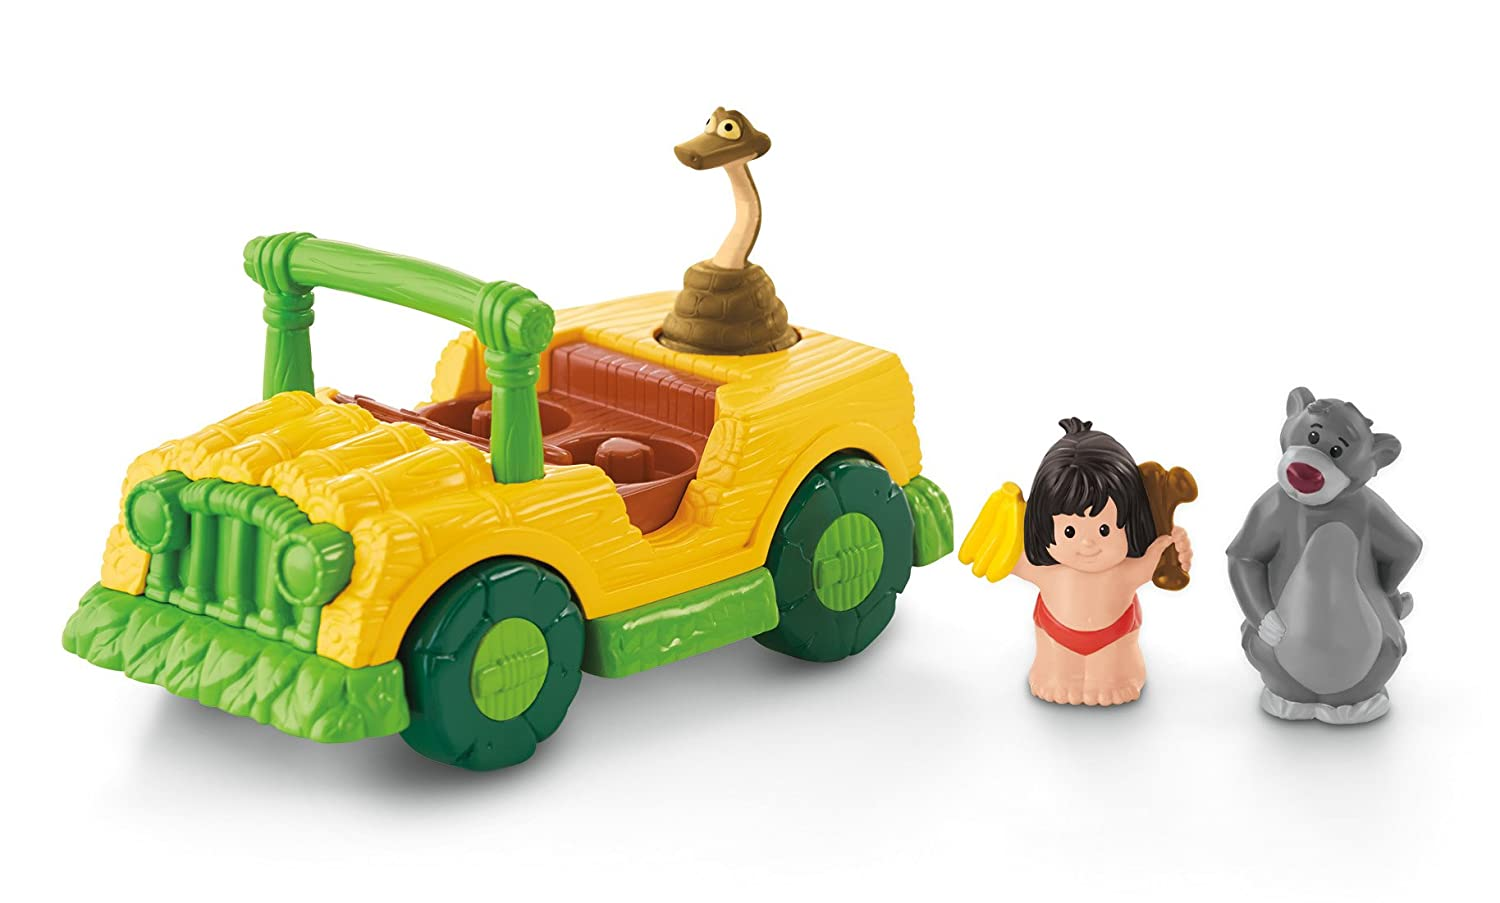 Fisher-Price Little People Disney Jungle Book Vehicle Fisher Price BHV03